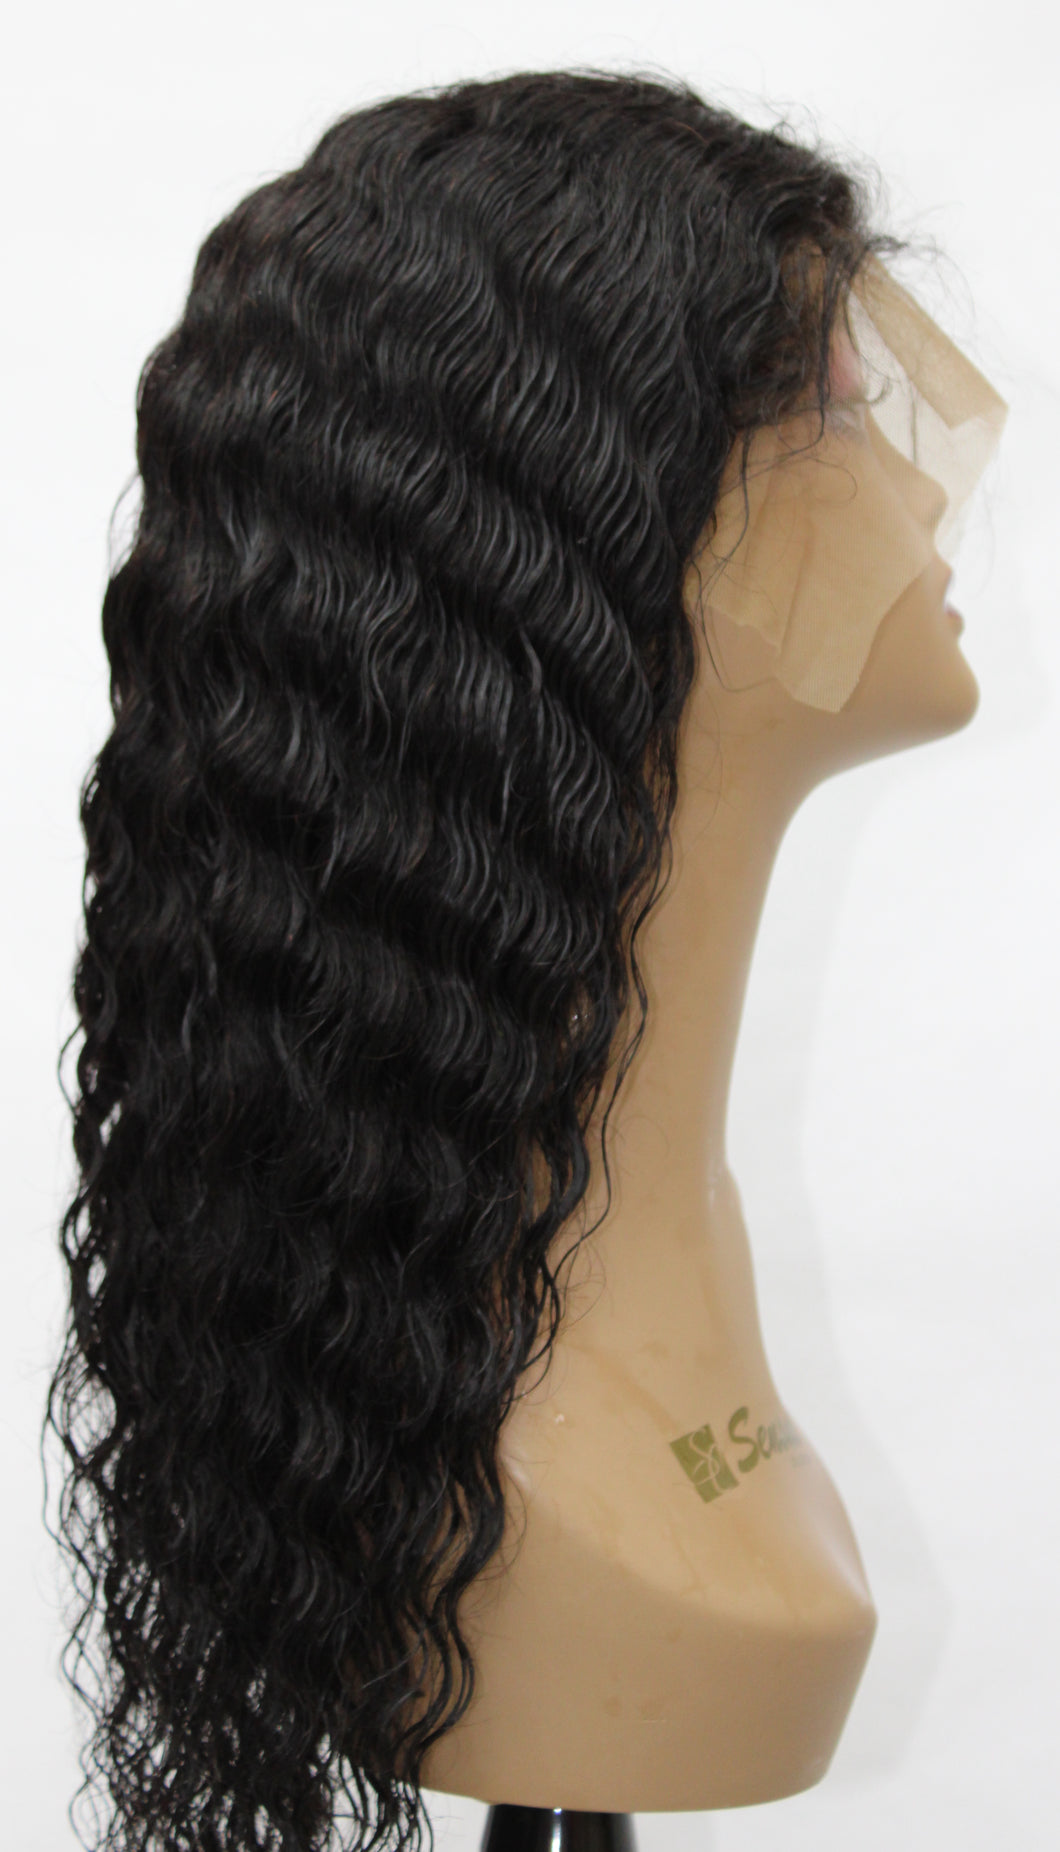 Natural Deep Wave 13x6 Lace Front Wigs